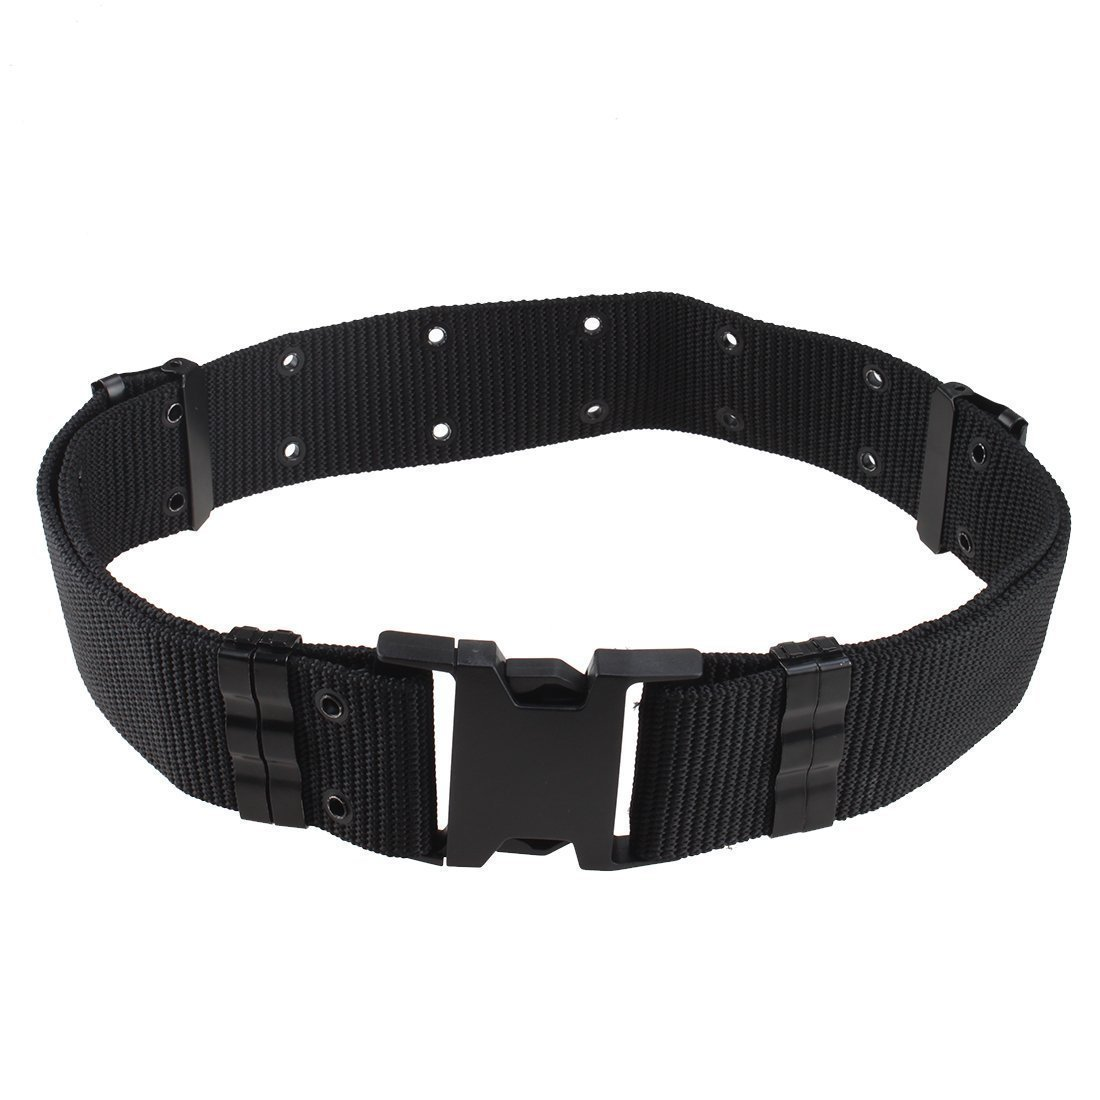 BUYEONLINE 2.25'' Tactical Outdoor Marine Military Style Nylon Heavy Duty Belt(Black)